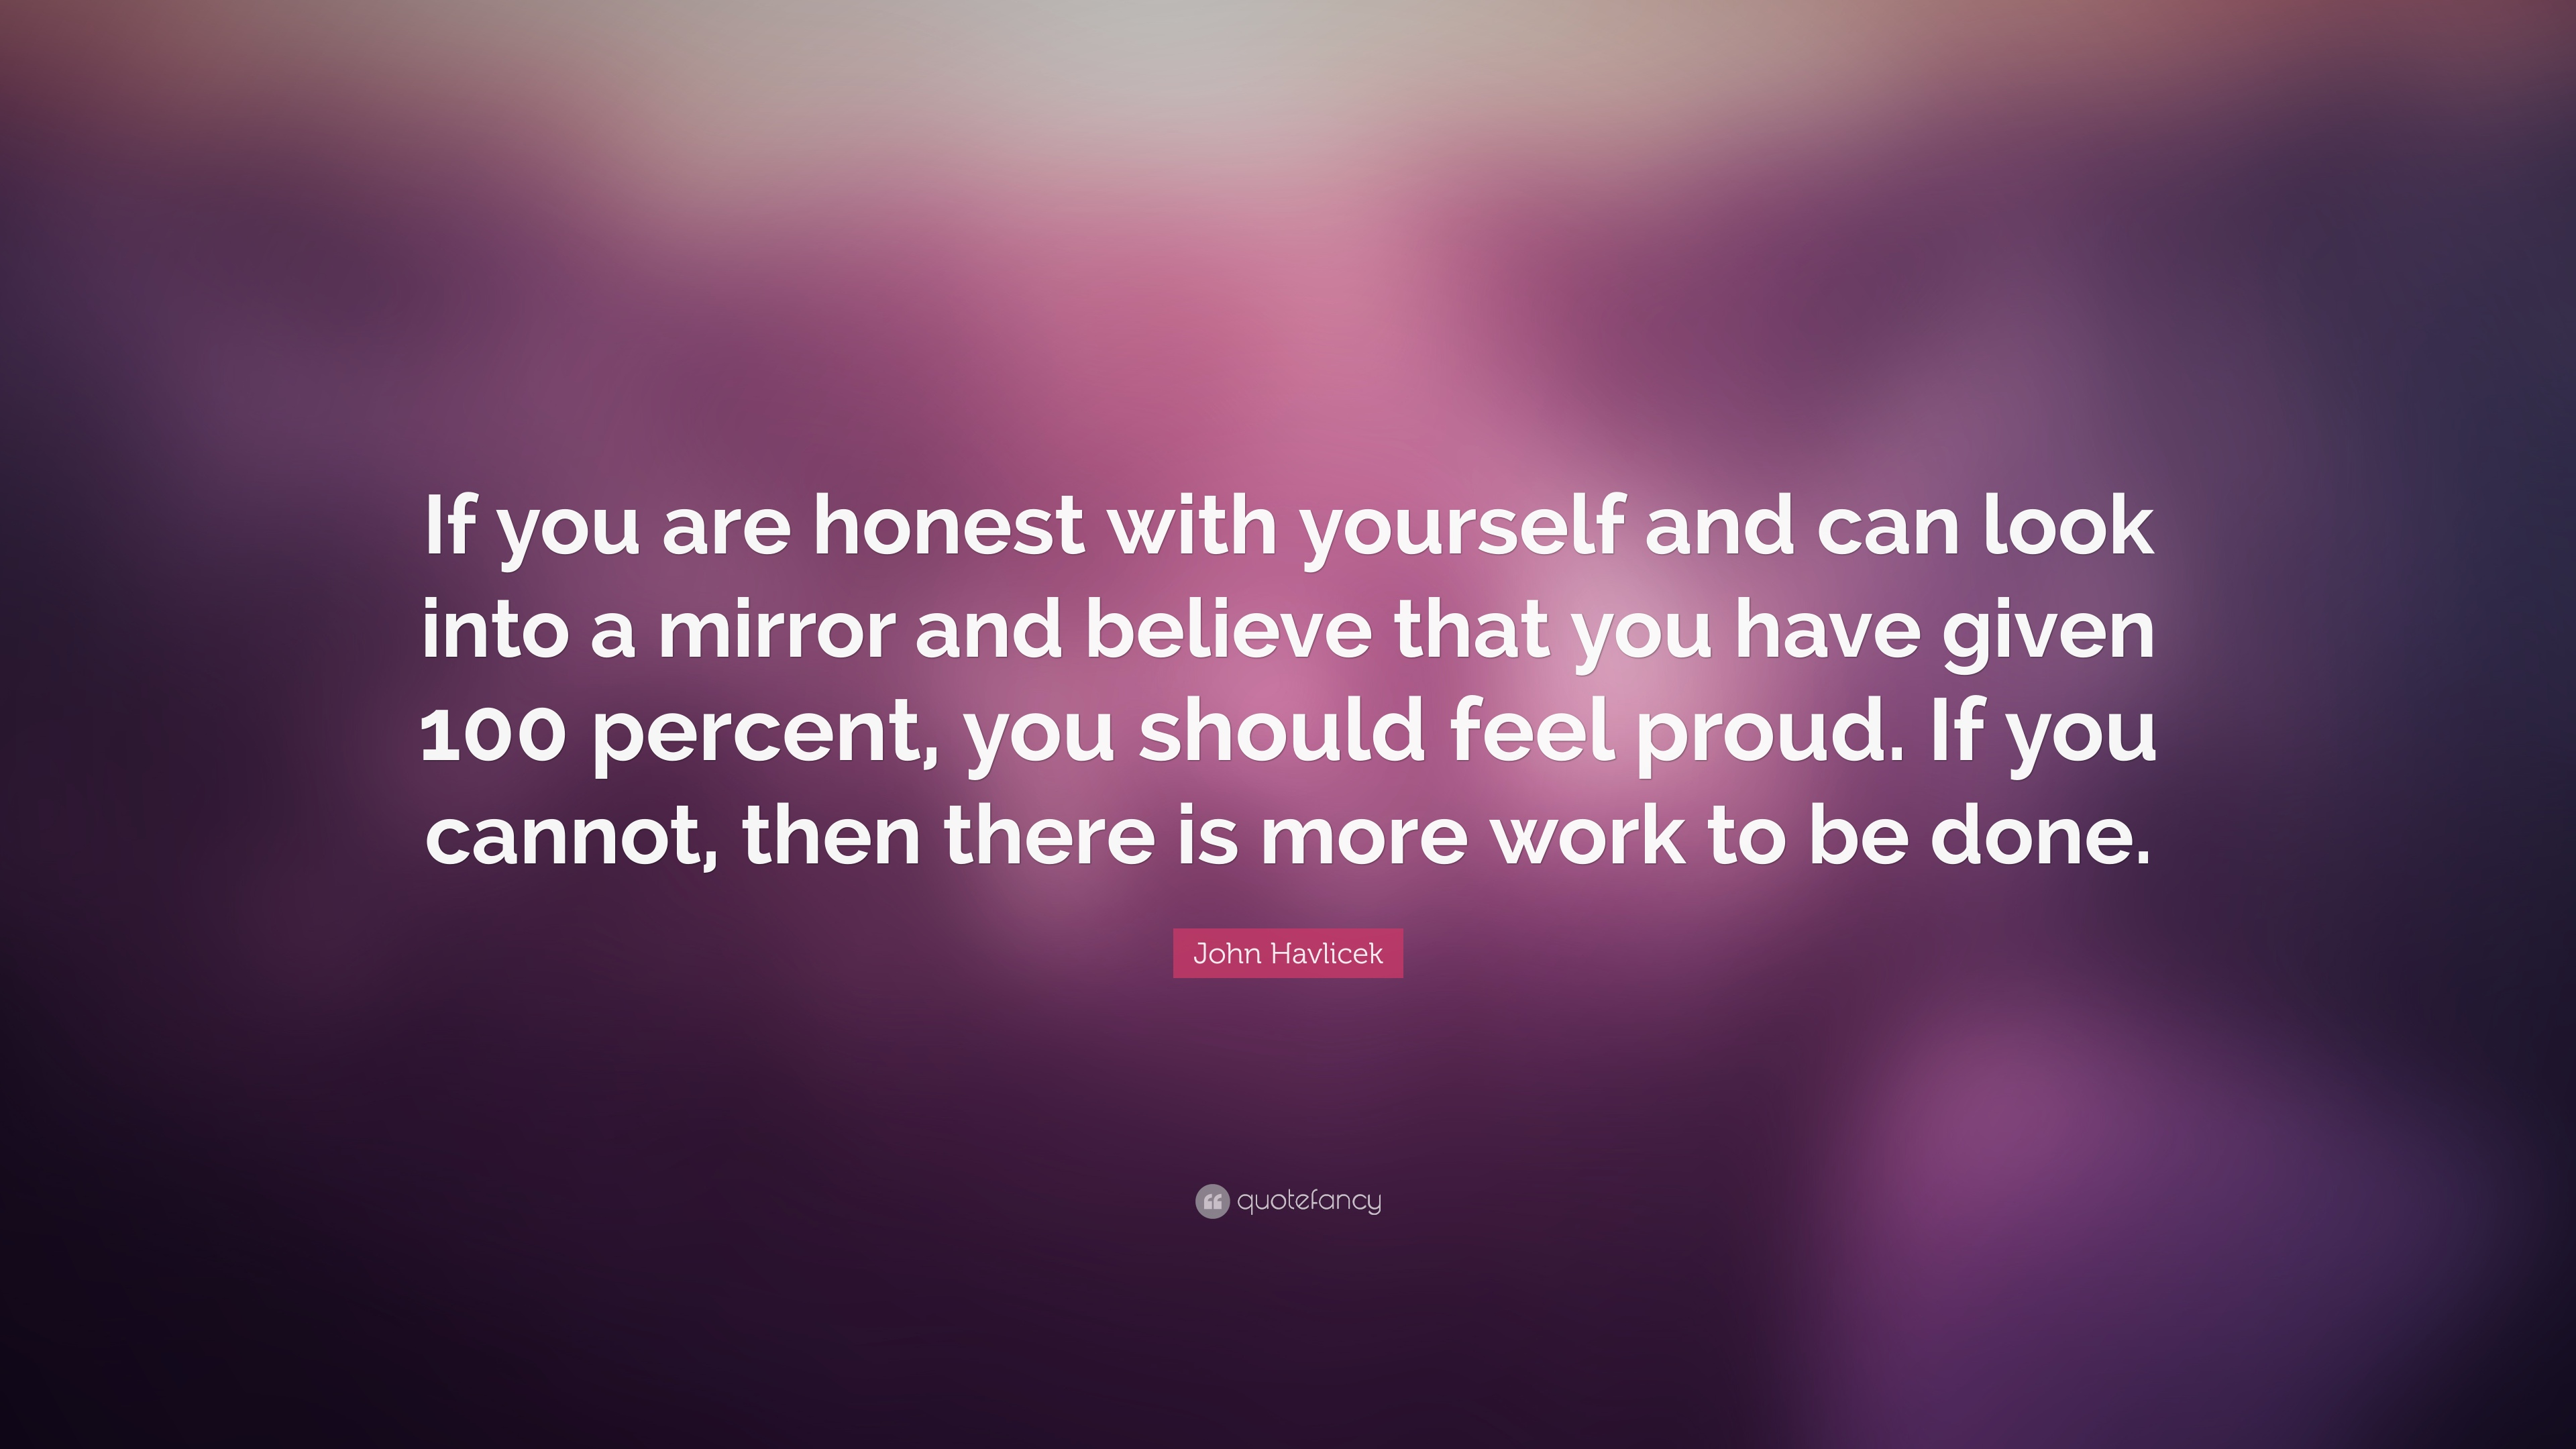 John Havlicek Quote If You Are Honest With Yourself And Can Look